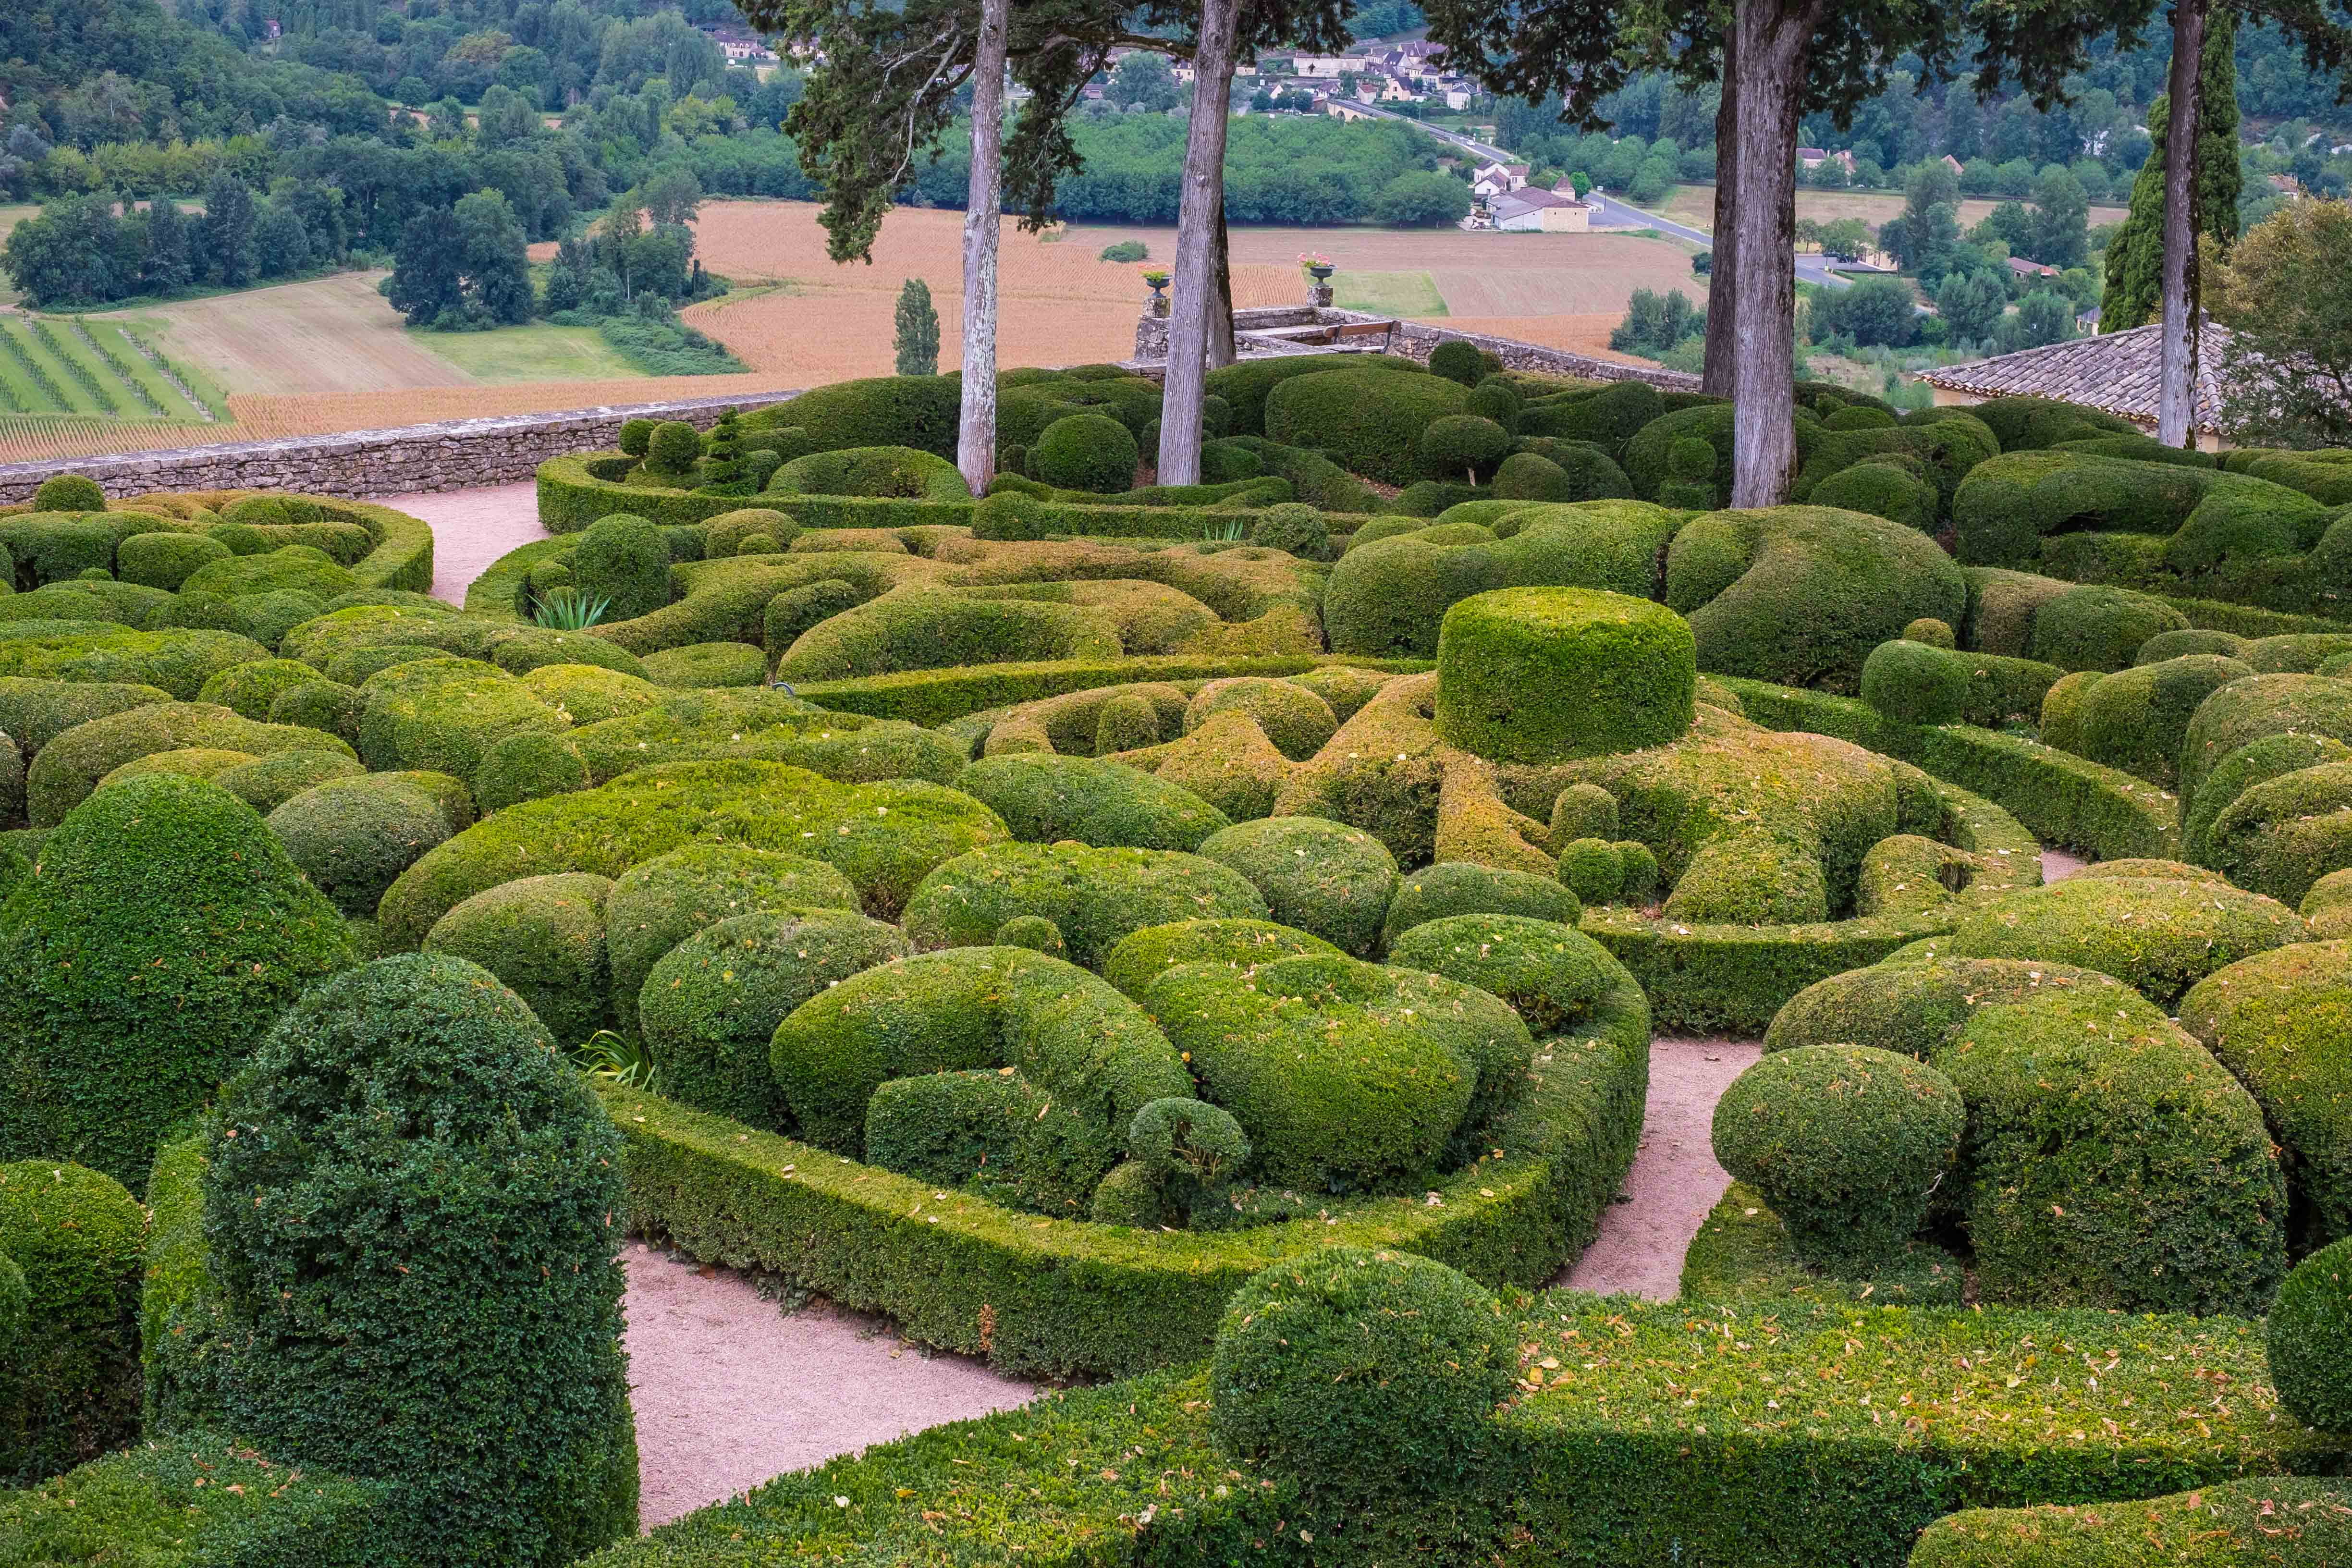 The Gardens at Marqueyssac – one of France's great tourist destinations in the Dordogne